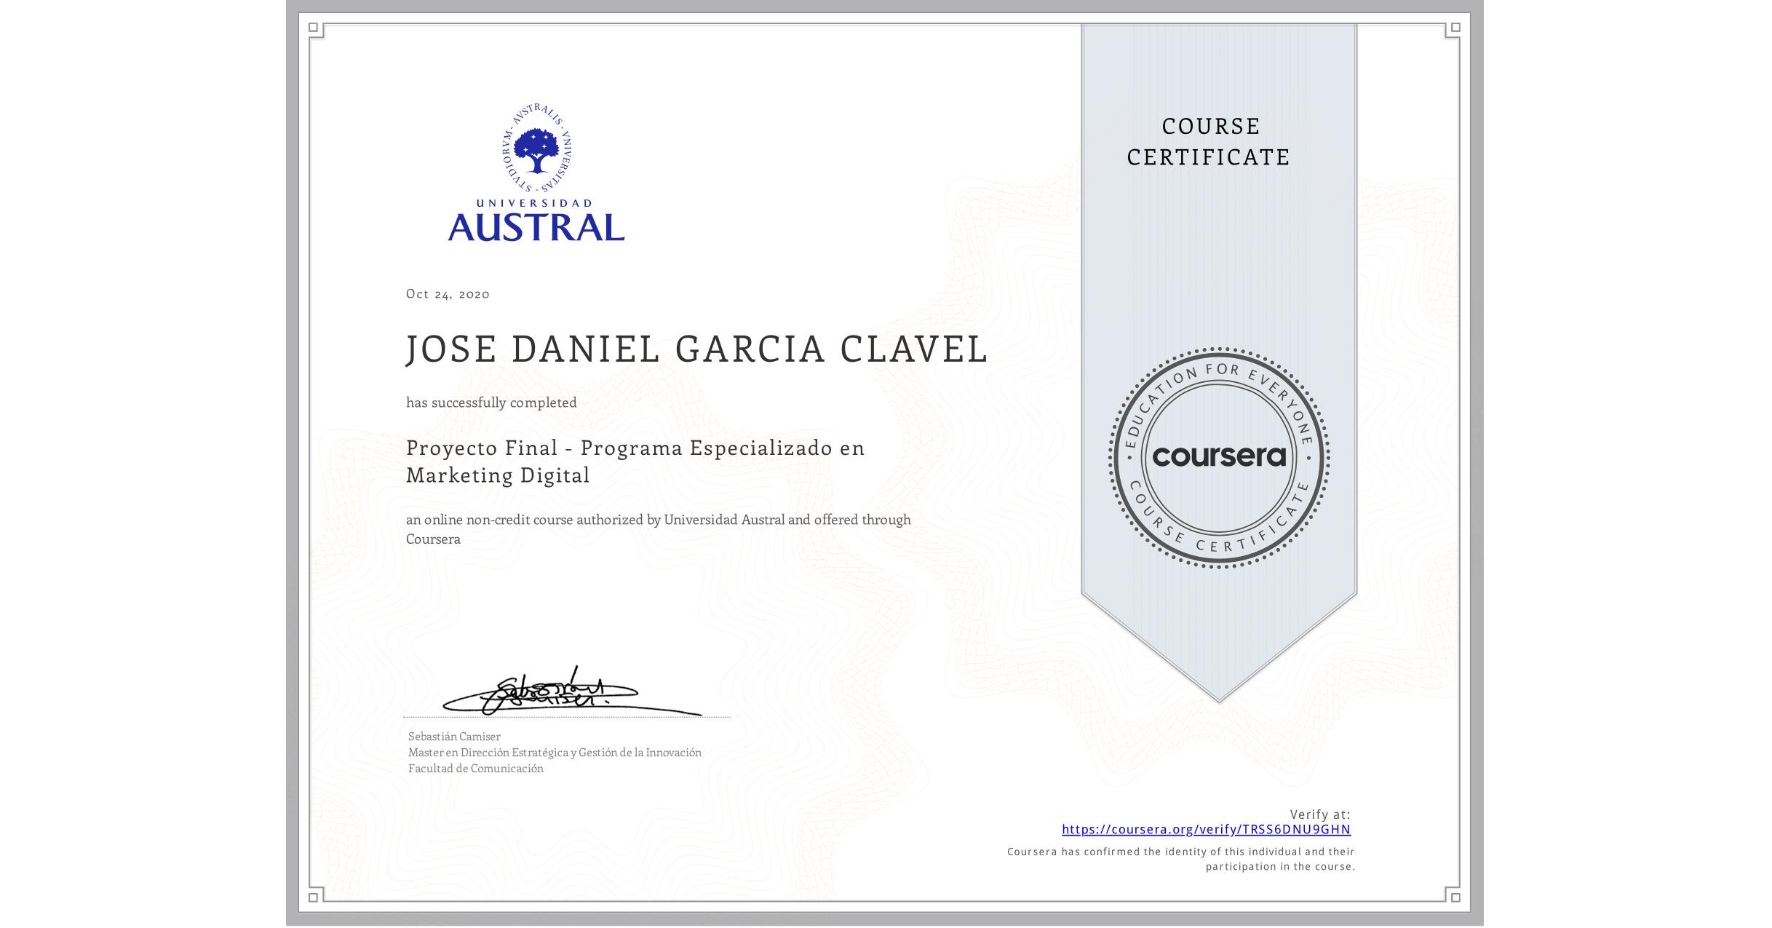 View certificate for JOSE DANIEL GARCIA CLAVEL, Proyecto Final - Programa Especializado en Marketing Digital, an online non-credit course authorized by Universidad Austral and offered through Coursera